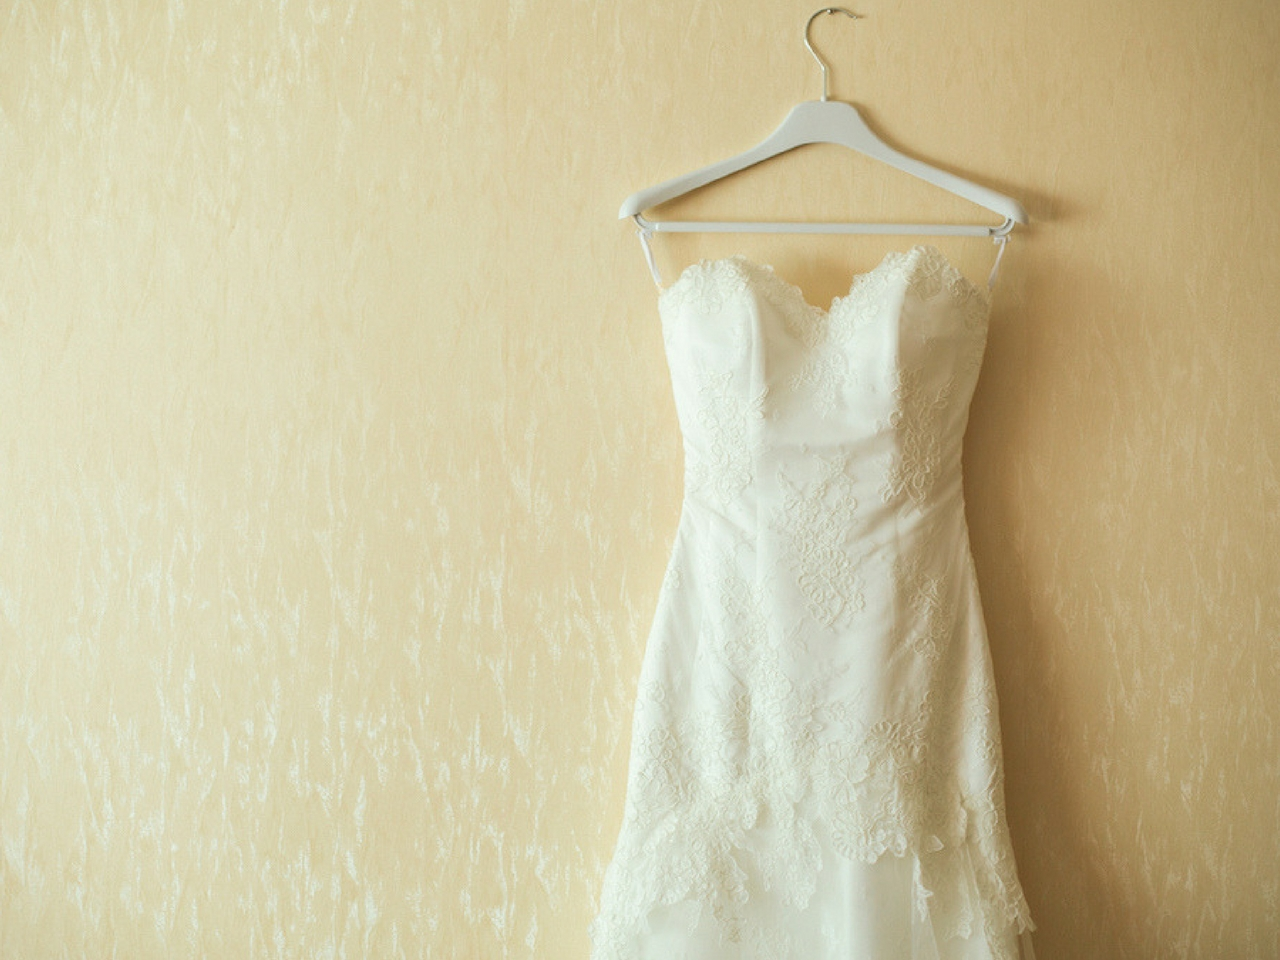 Custom gown vs pre made off the shelf bryony jayne for Off the rack wedding dresses melbourne